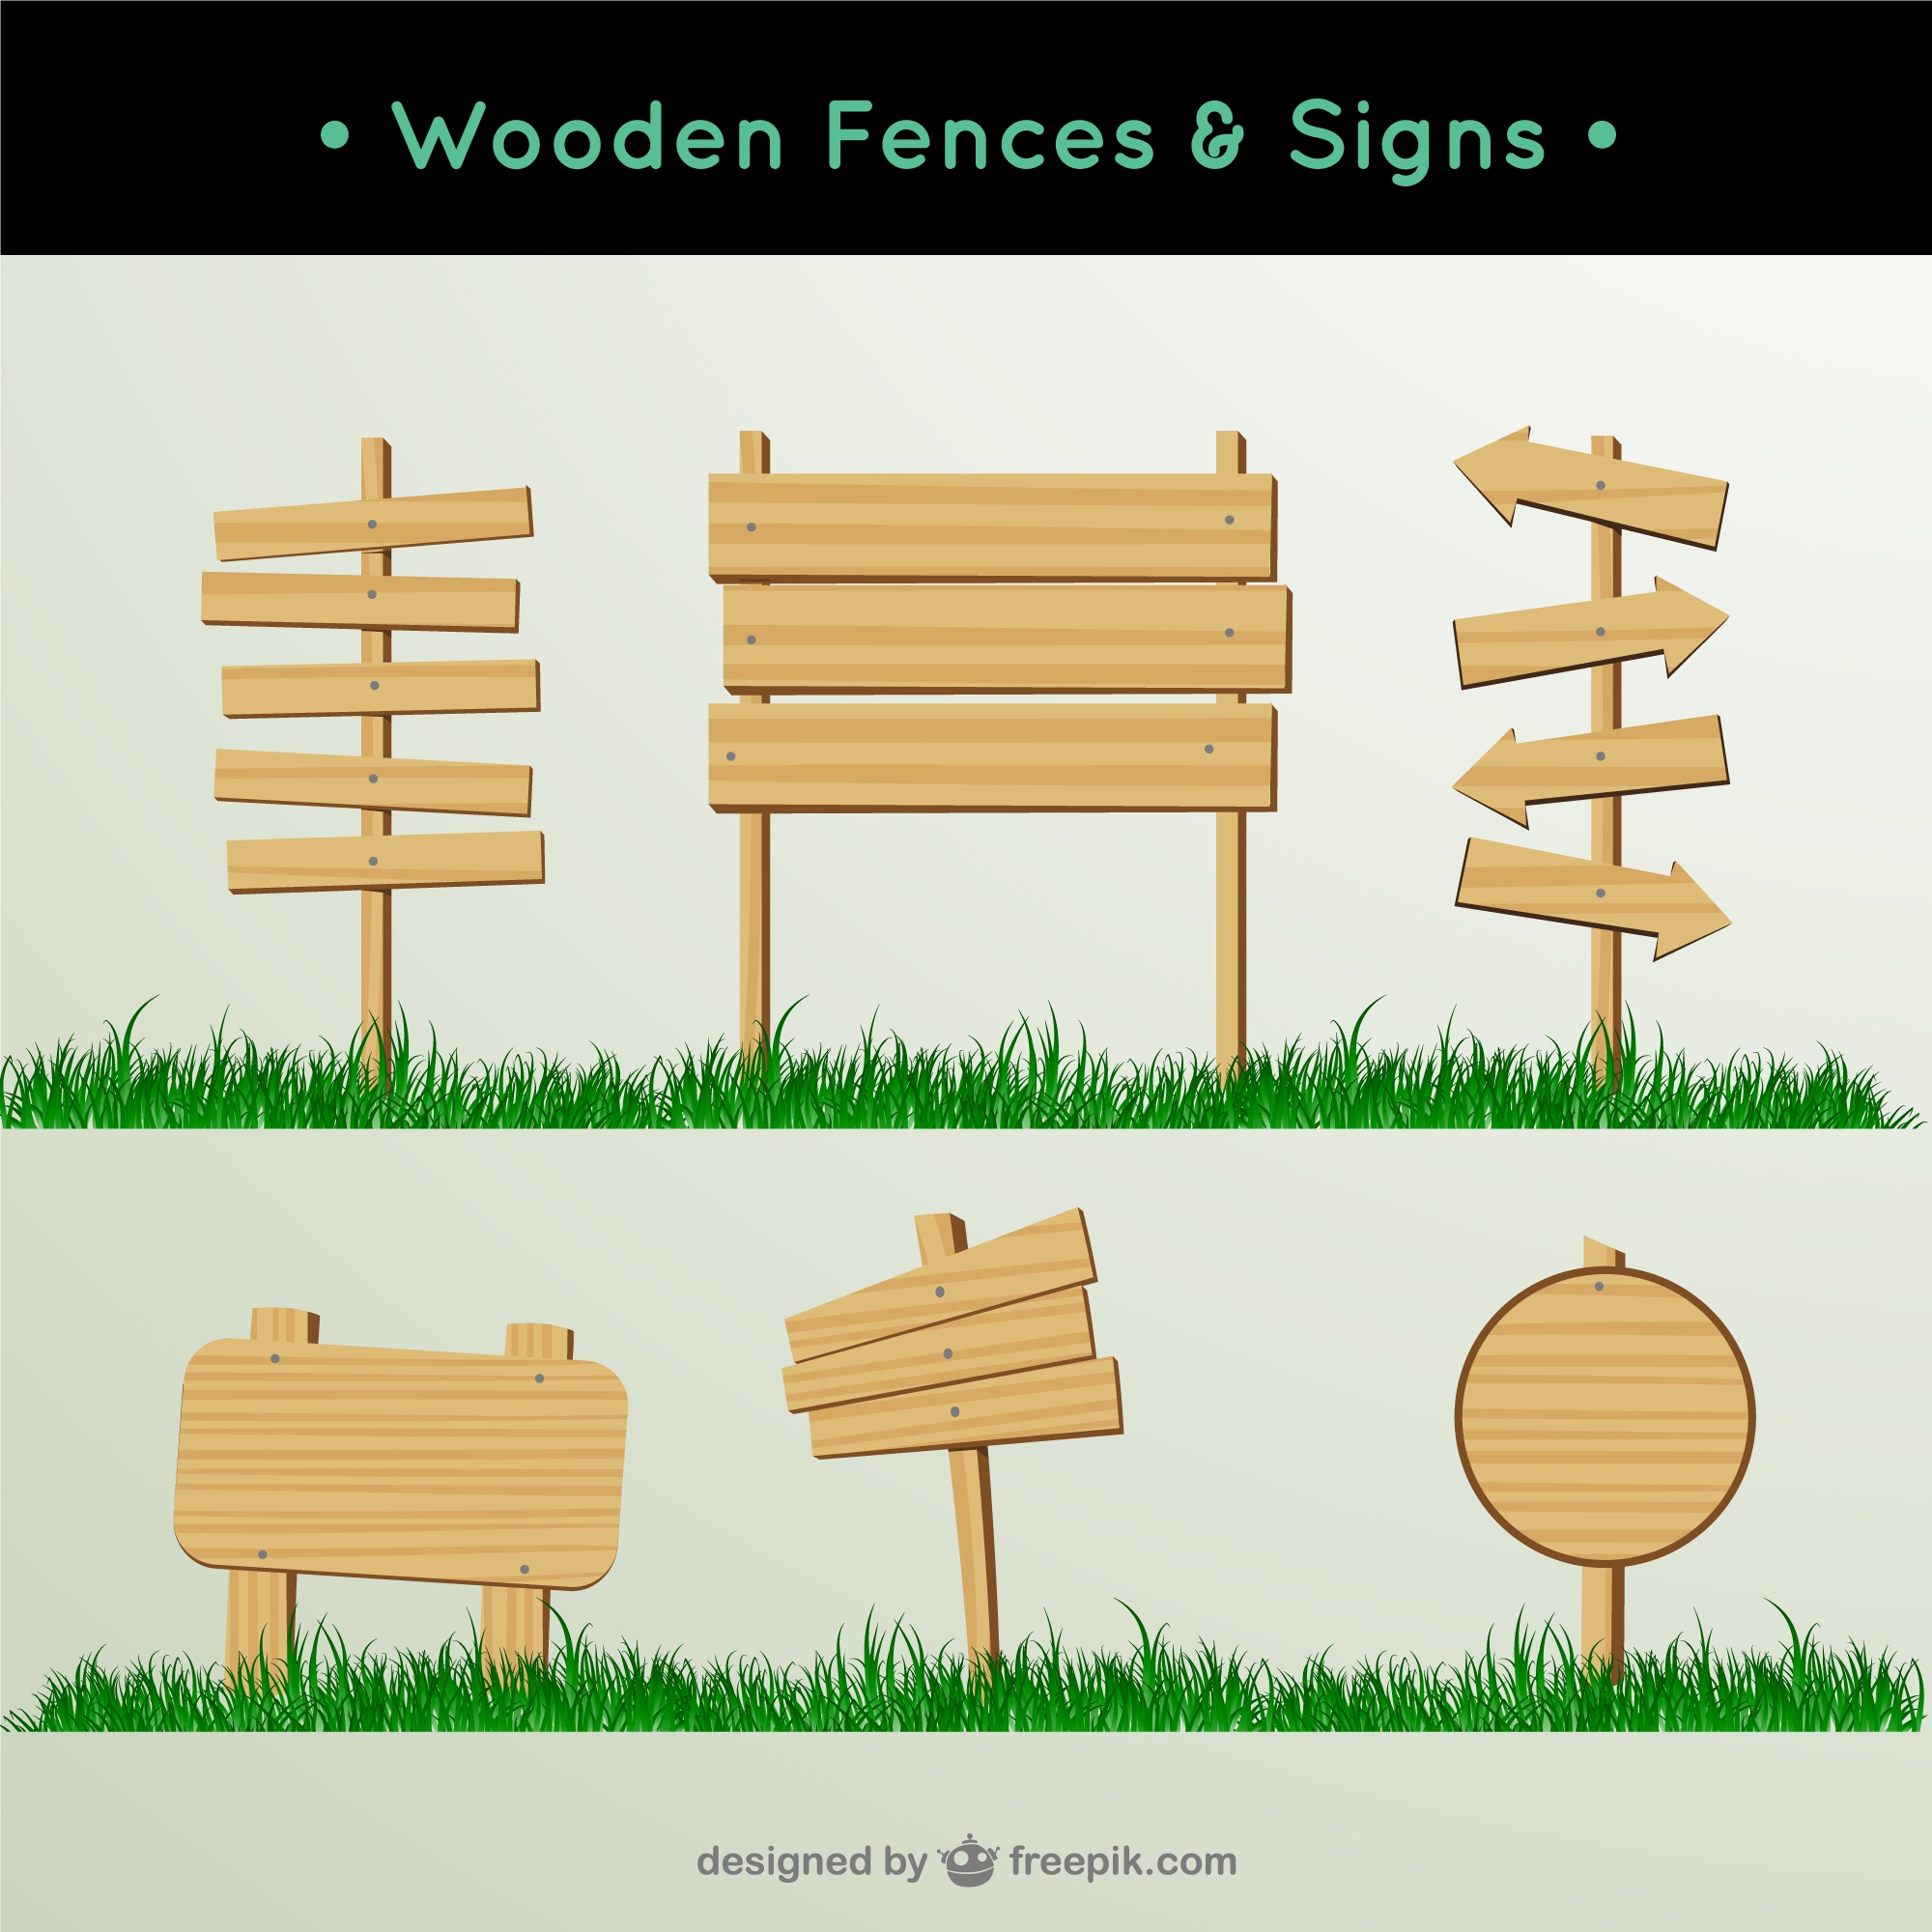 Wooden fences and signs